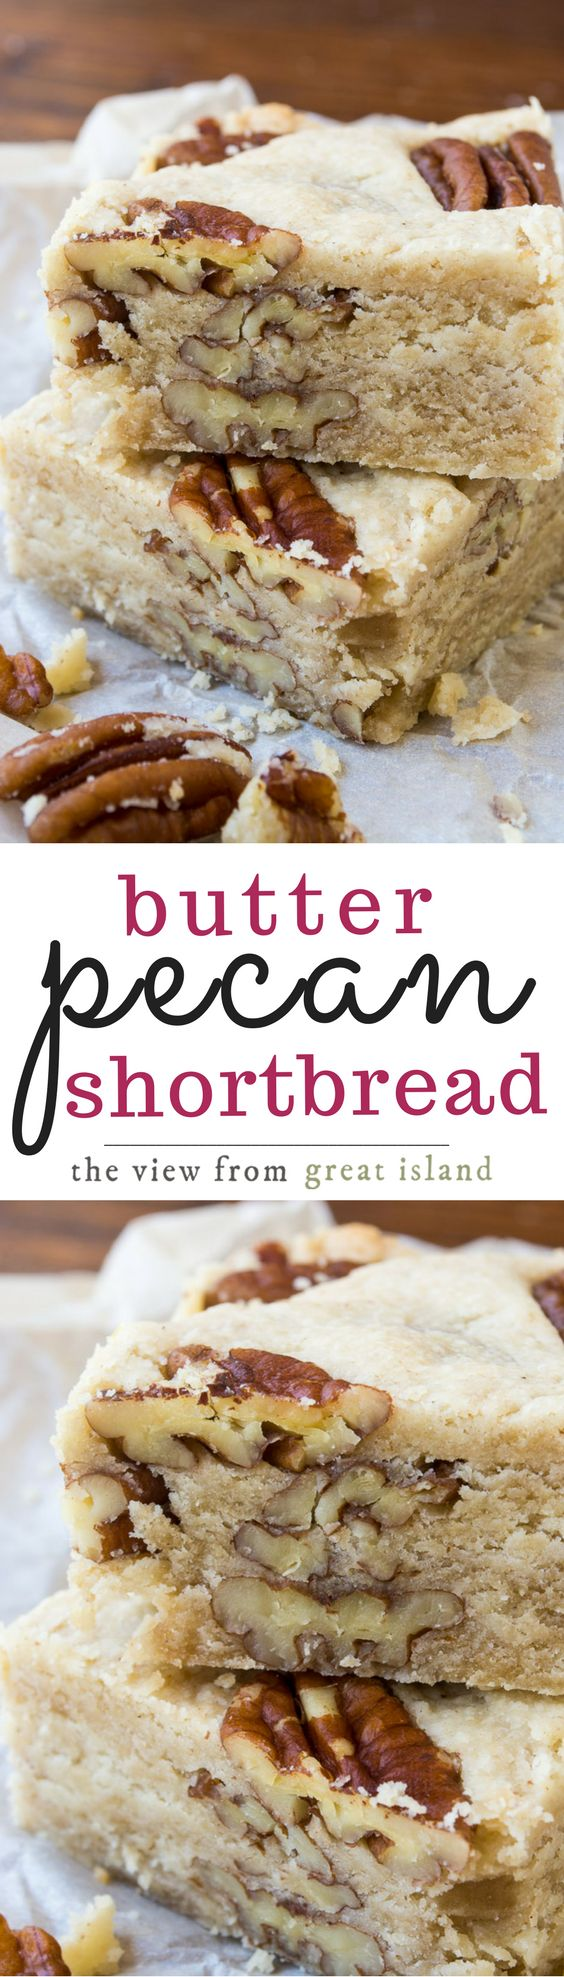 Butter Pecan Shortbread is a classic buttery shortbread loaded up with crunchy pecans ~ and everybody goes nuts for it! #dessert #shortbread #pecans #easyshortbread #pecanpie #thanksgivingdessert #easythanksgivingdessert #foodgift #bakesale #pecanbars #shortbreadbars #butterpecan #recipe #holidaydessert